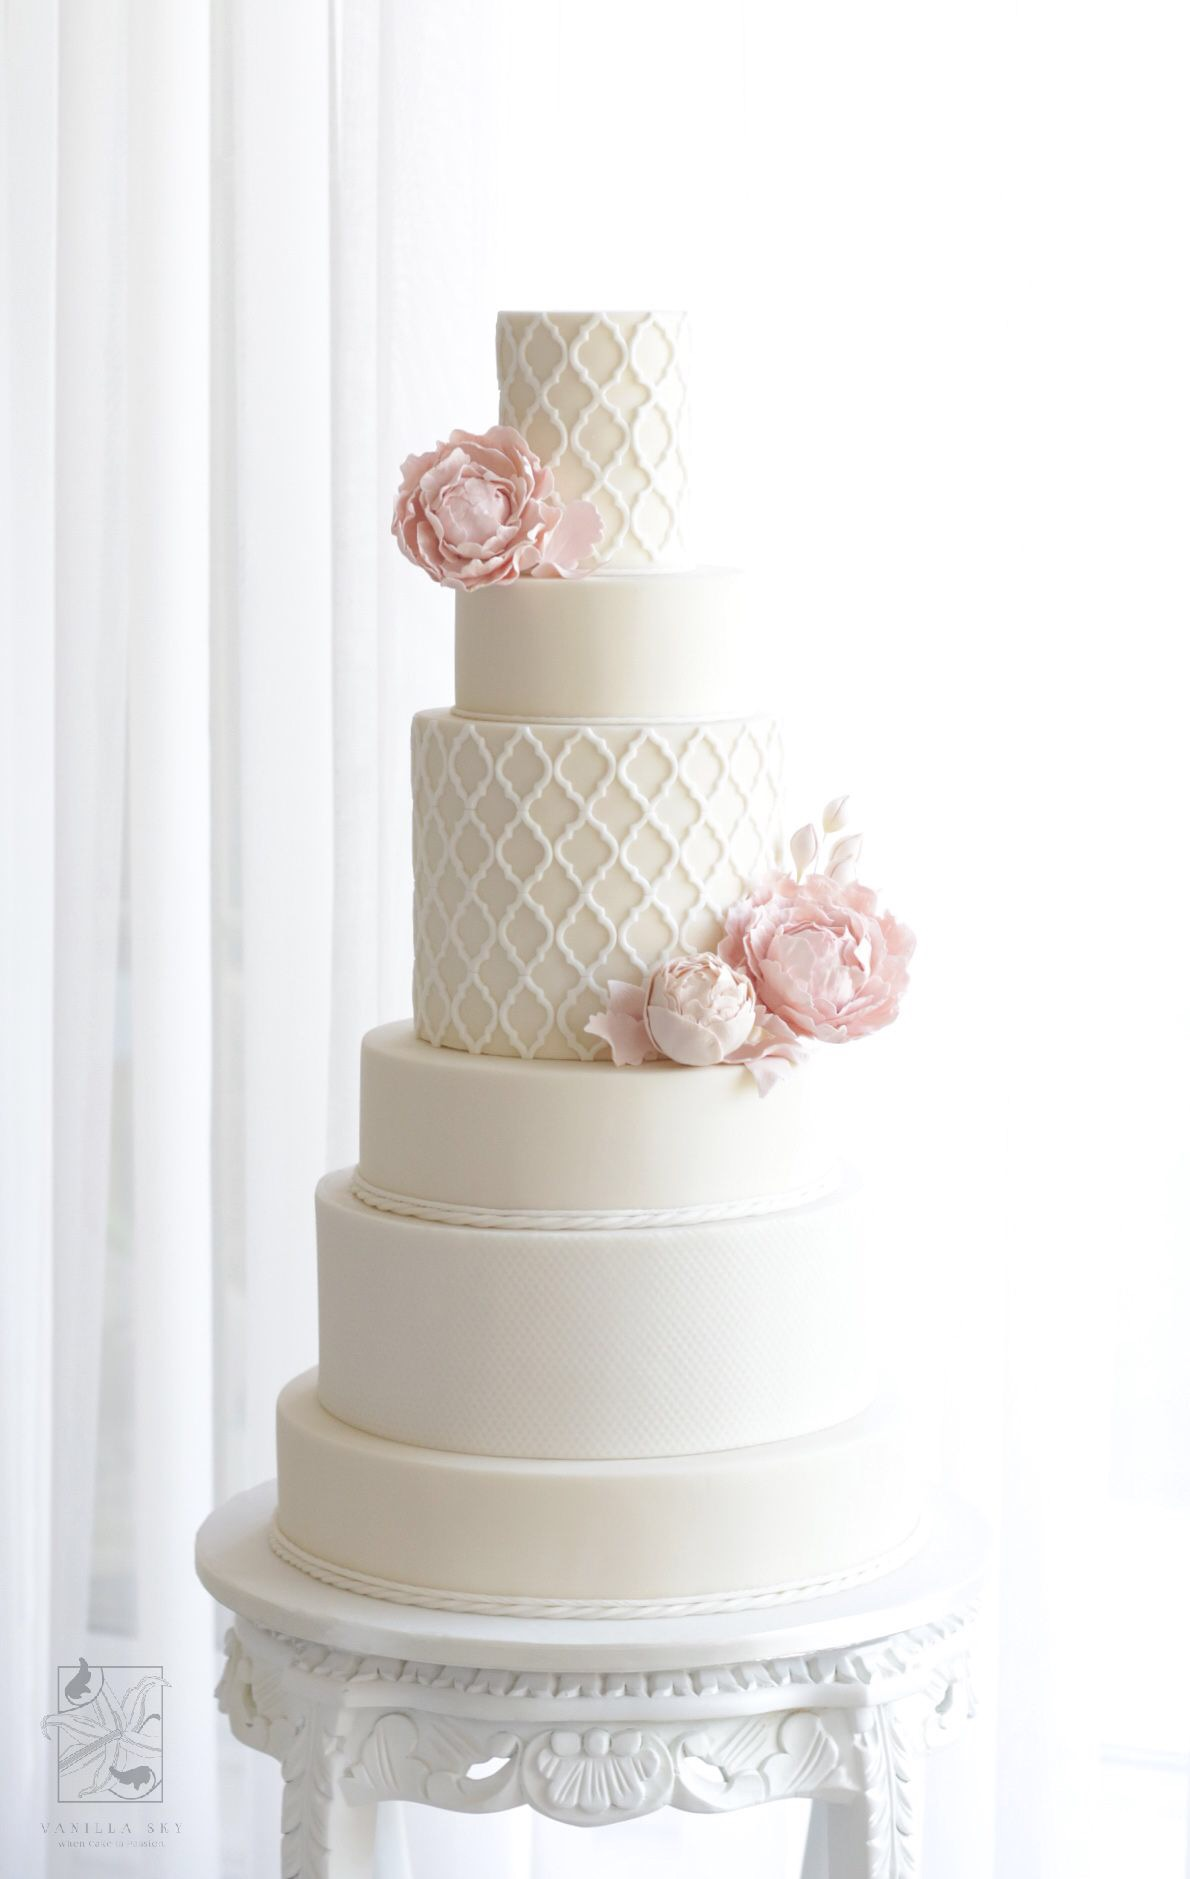 Ivory wedding cake with light pink sugar roses